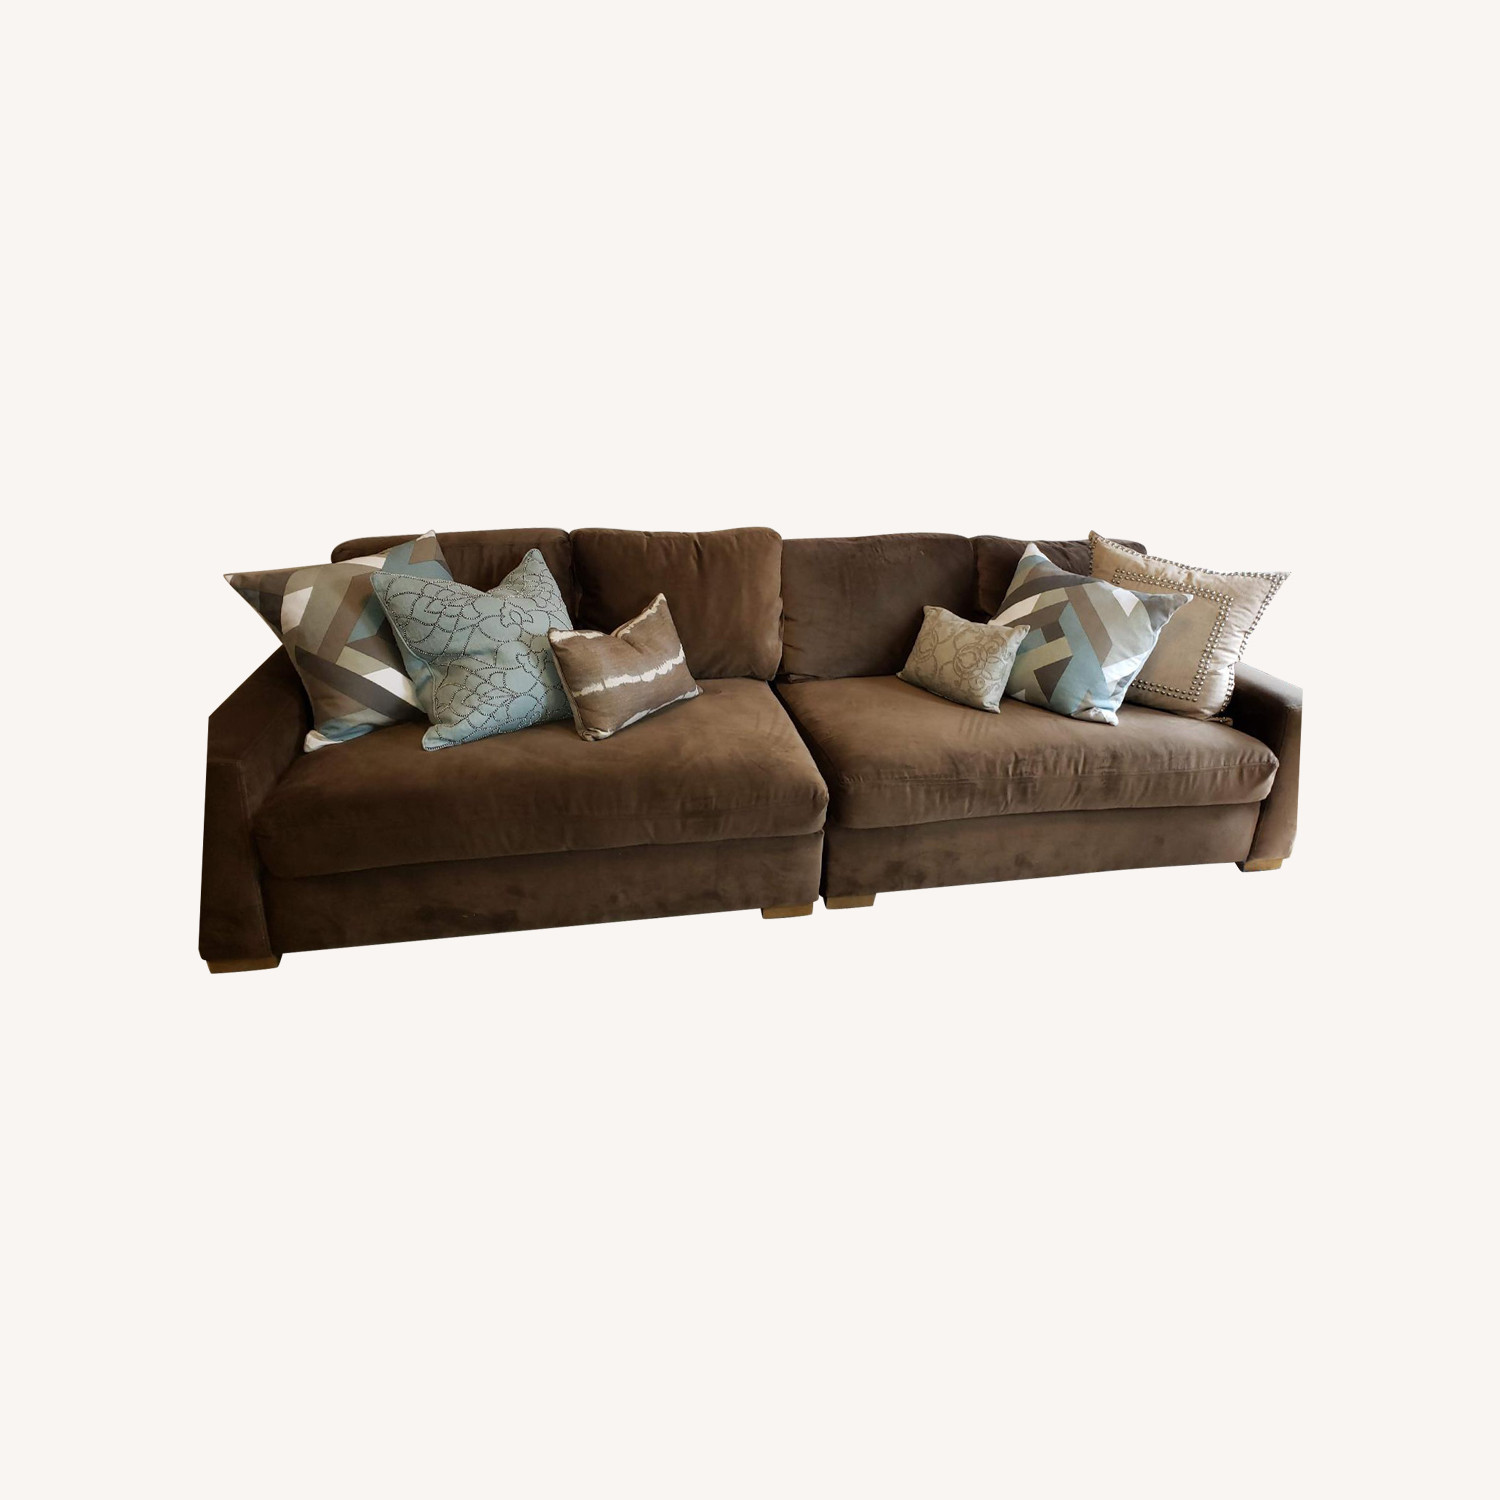 Restoration Hardware Maxwell 2-Piece Sofa in Mocha Velvet